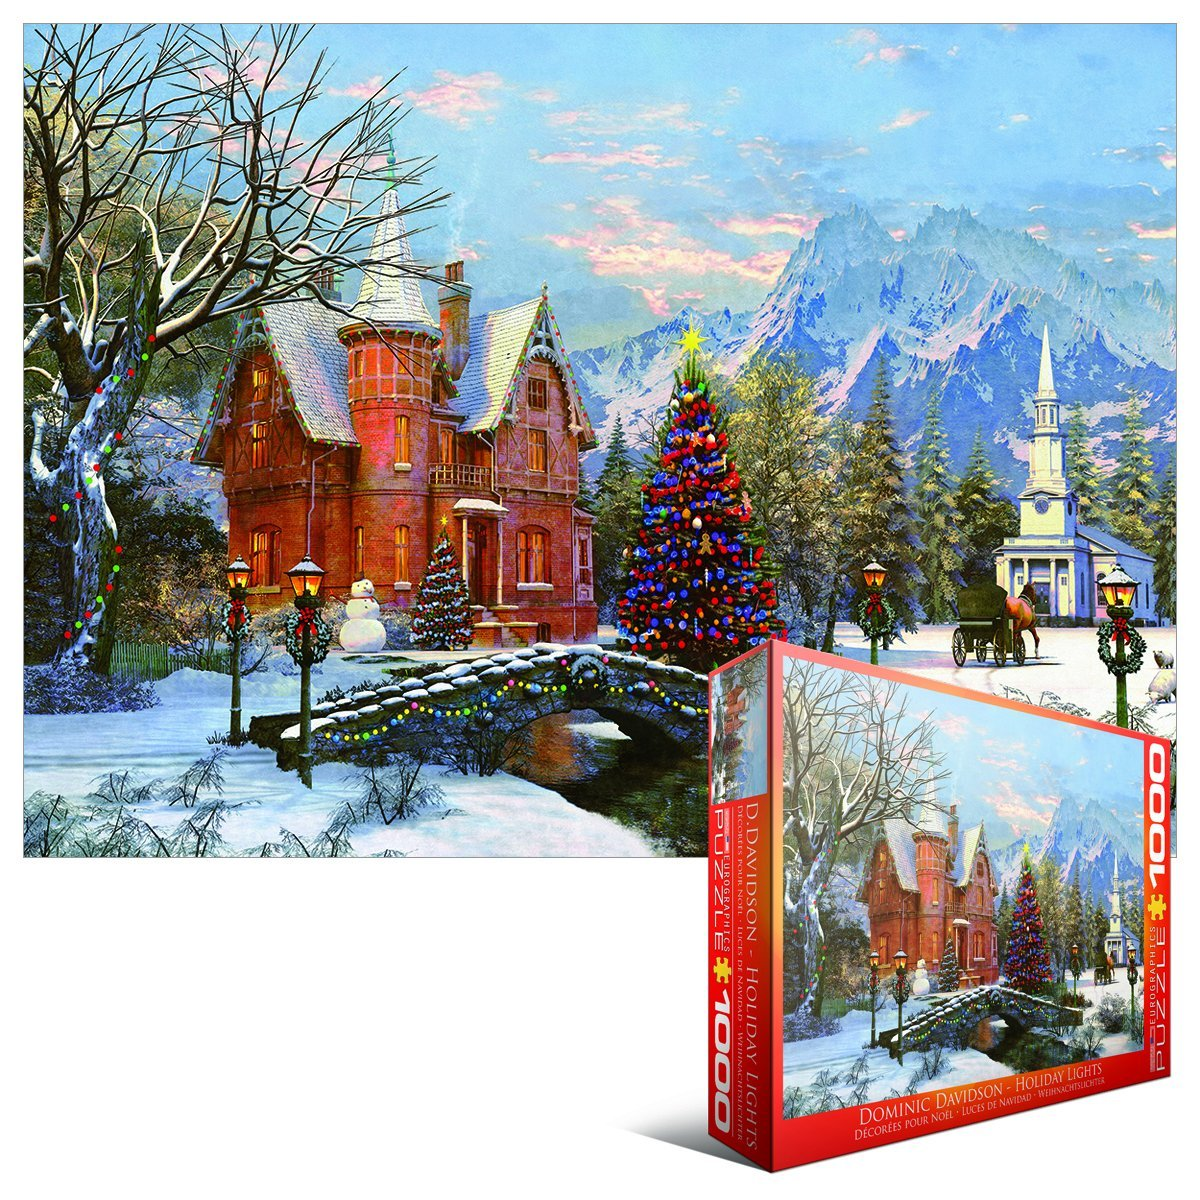 dominic davison holiday lights 1000 teile eurographics puzzle online kaufen. Black Bedroom Furniture Sets. Home Design Ideas